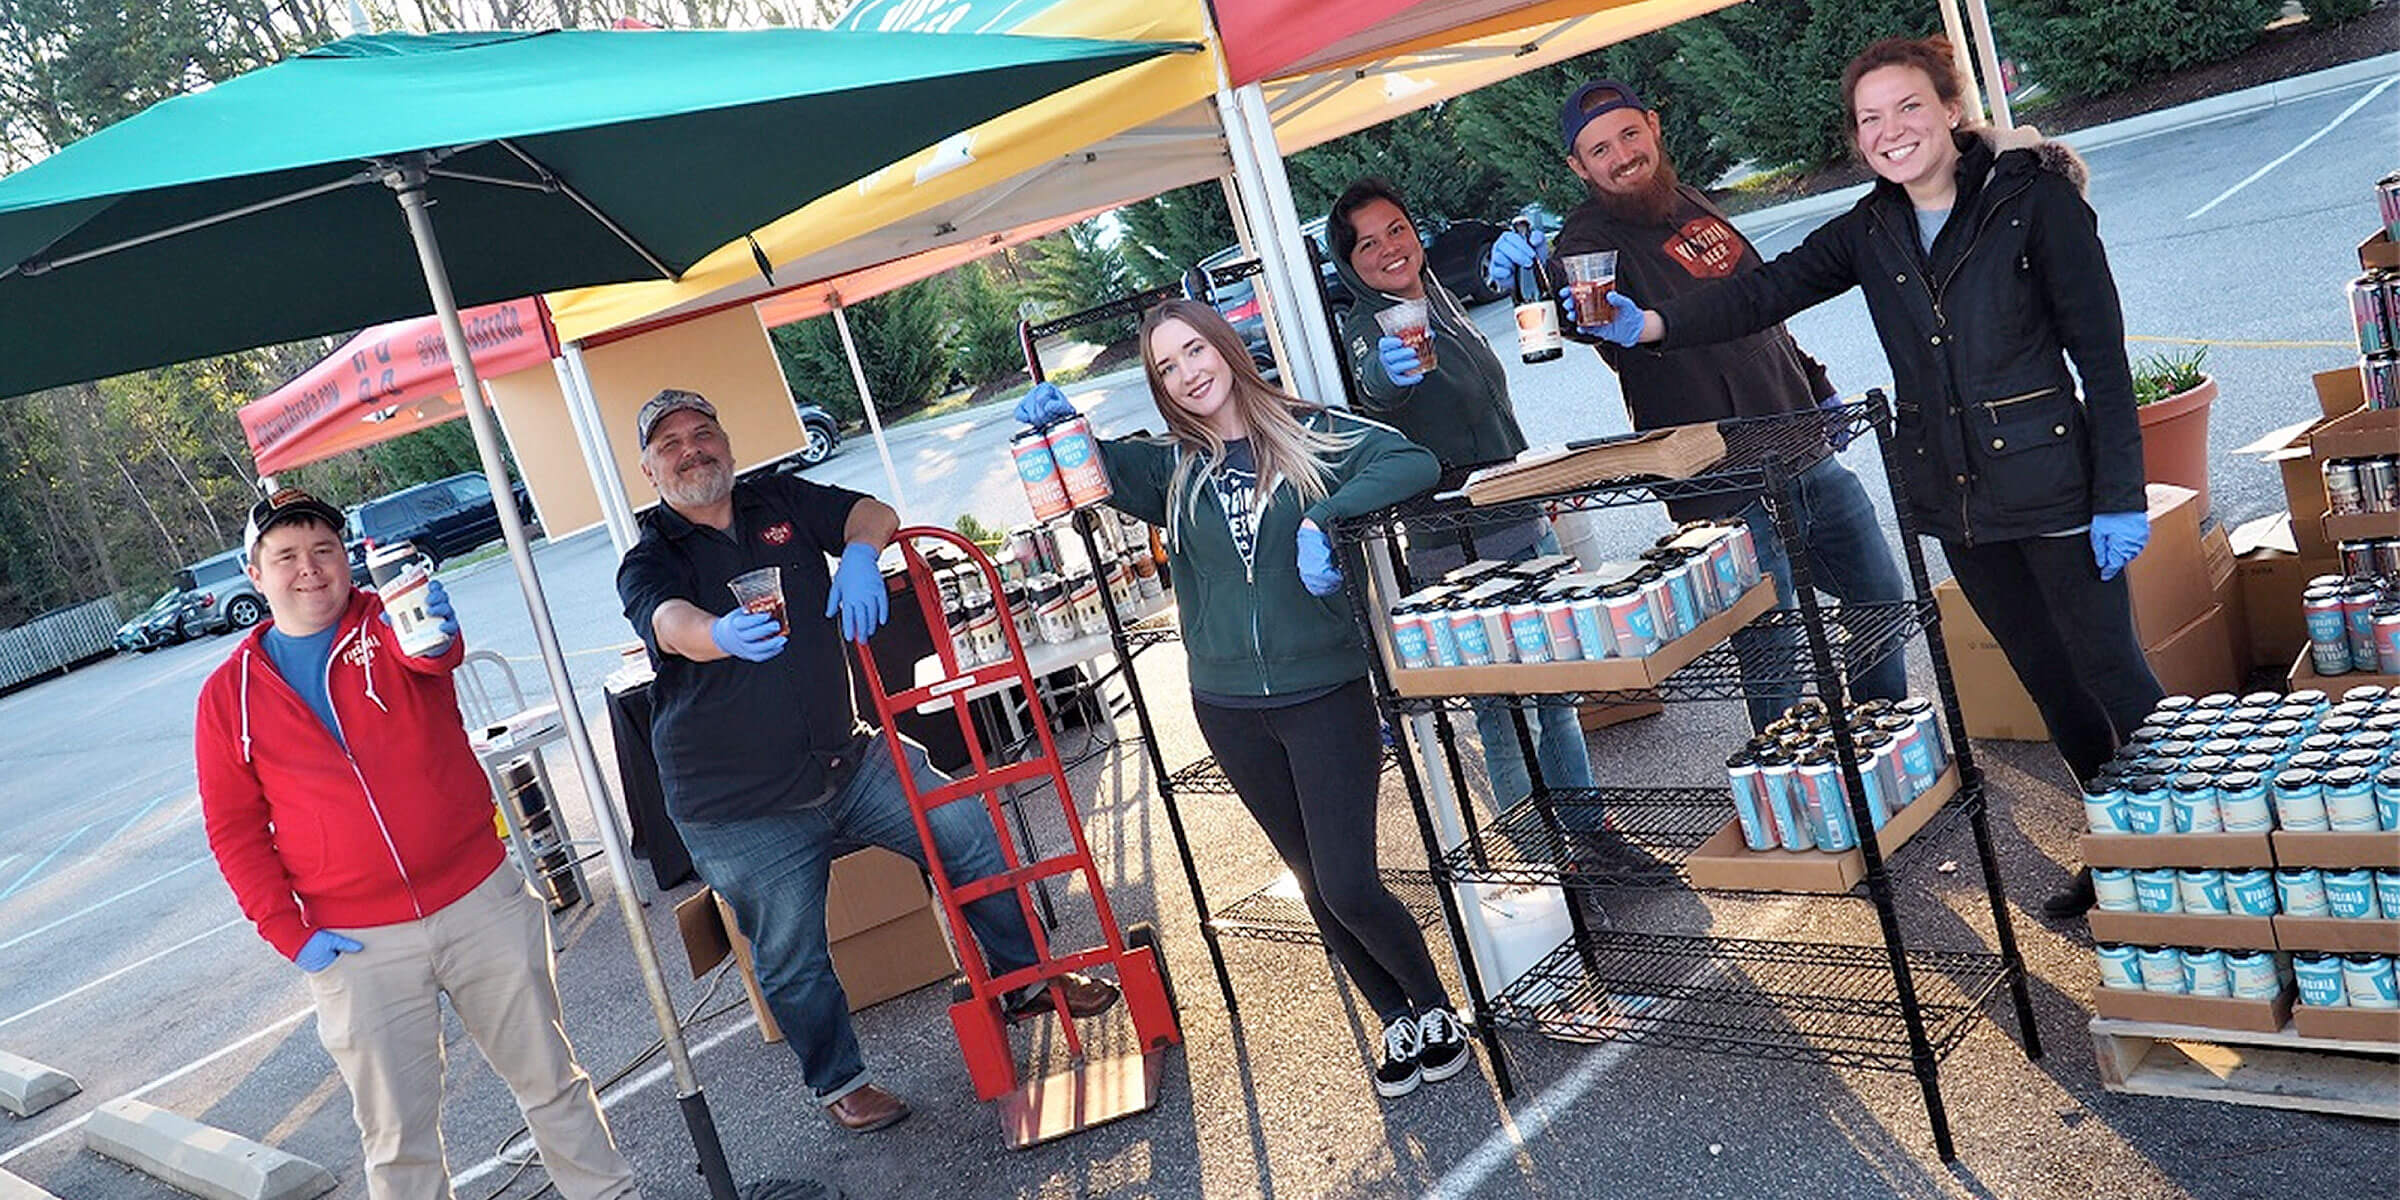 The Virginia Beer Company marked its 4th anniversary amid a rapid transition to takeaway and delivery services in response to the COVID-19 pandemic.